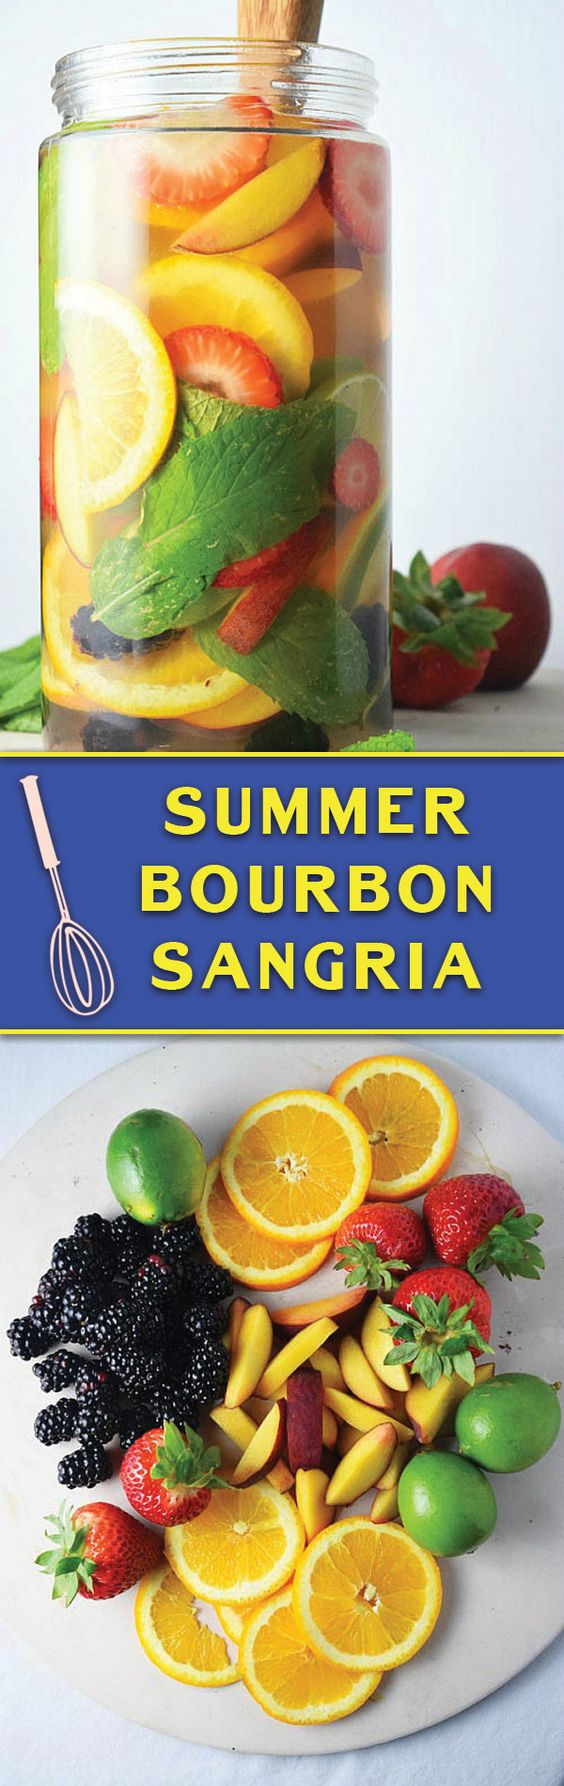 Summer Bourbon Sangria - tons of fresh summer fruits, the best wine ...